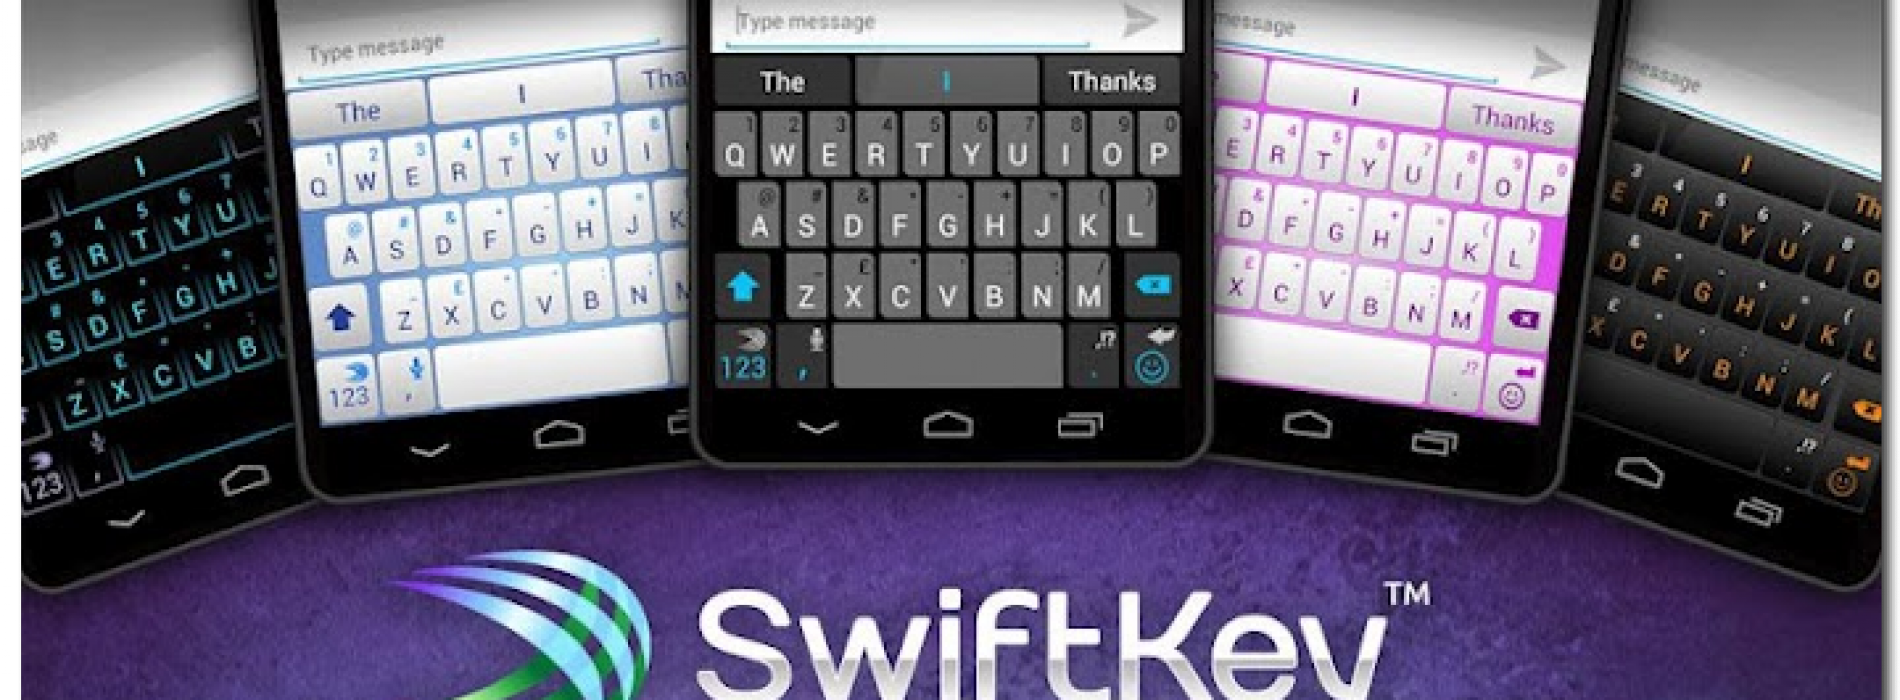 SwiftKey – faster, easier, more accurate typing for phones and tablets